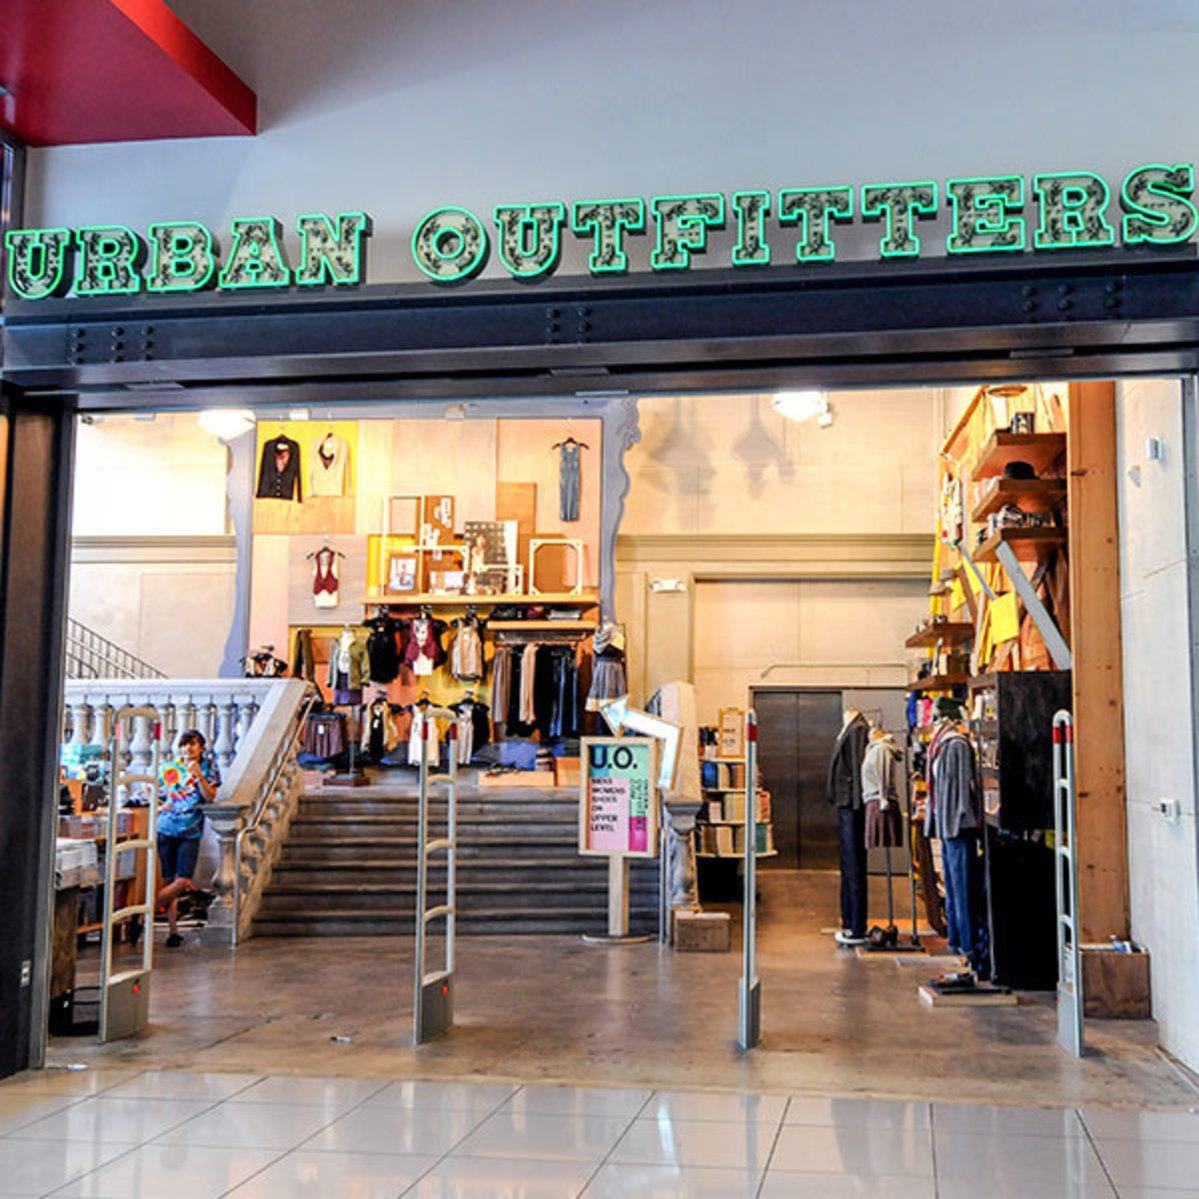 Urban Outfitters responds to allegations of profiling